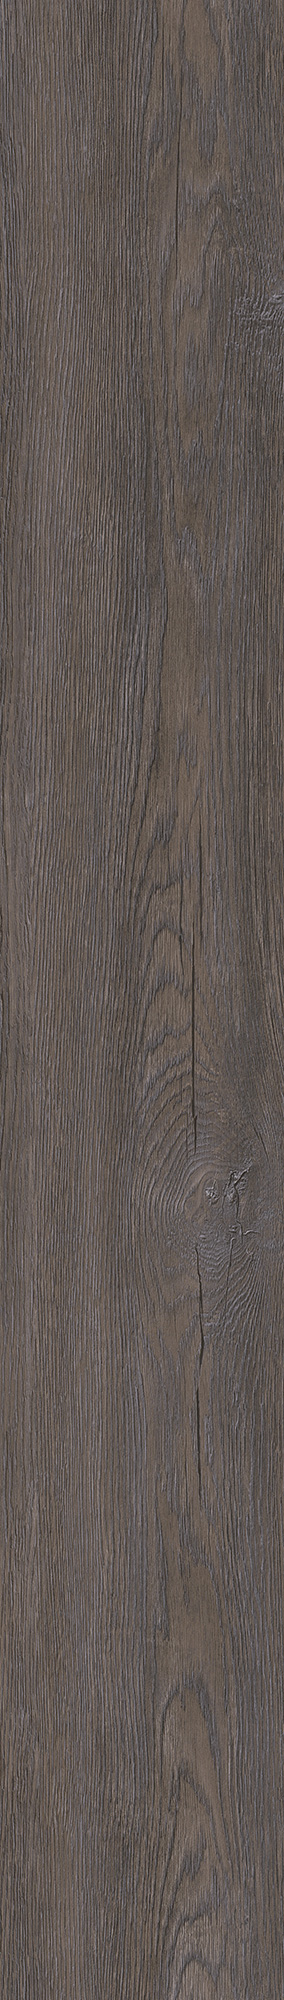 VIntage Grey Oak Vinyl Click flooring by Luvanto - large view